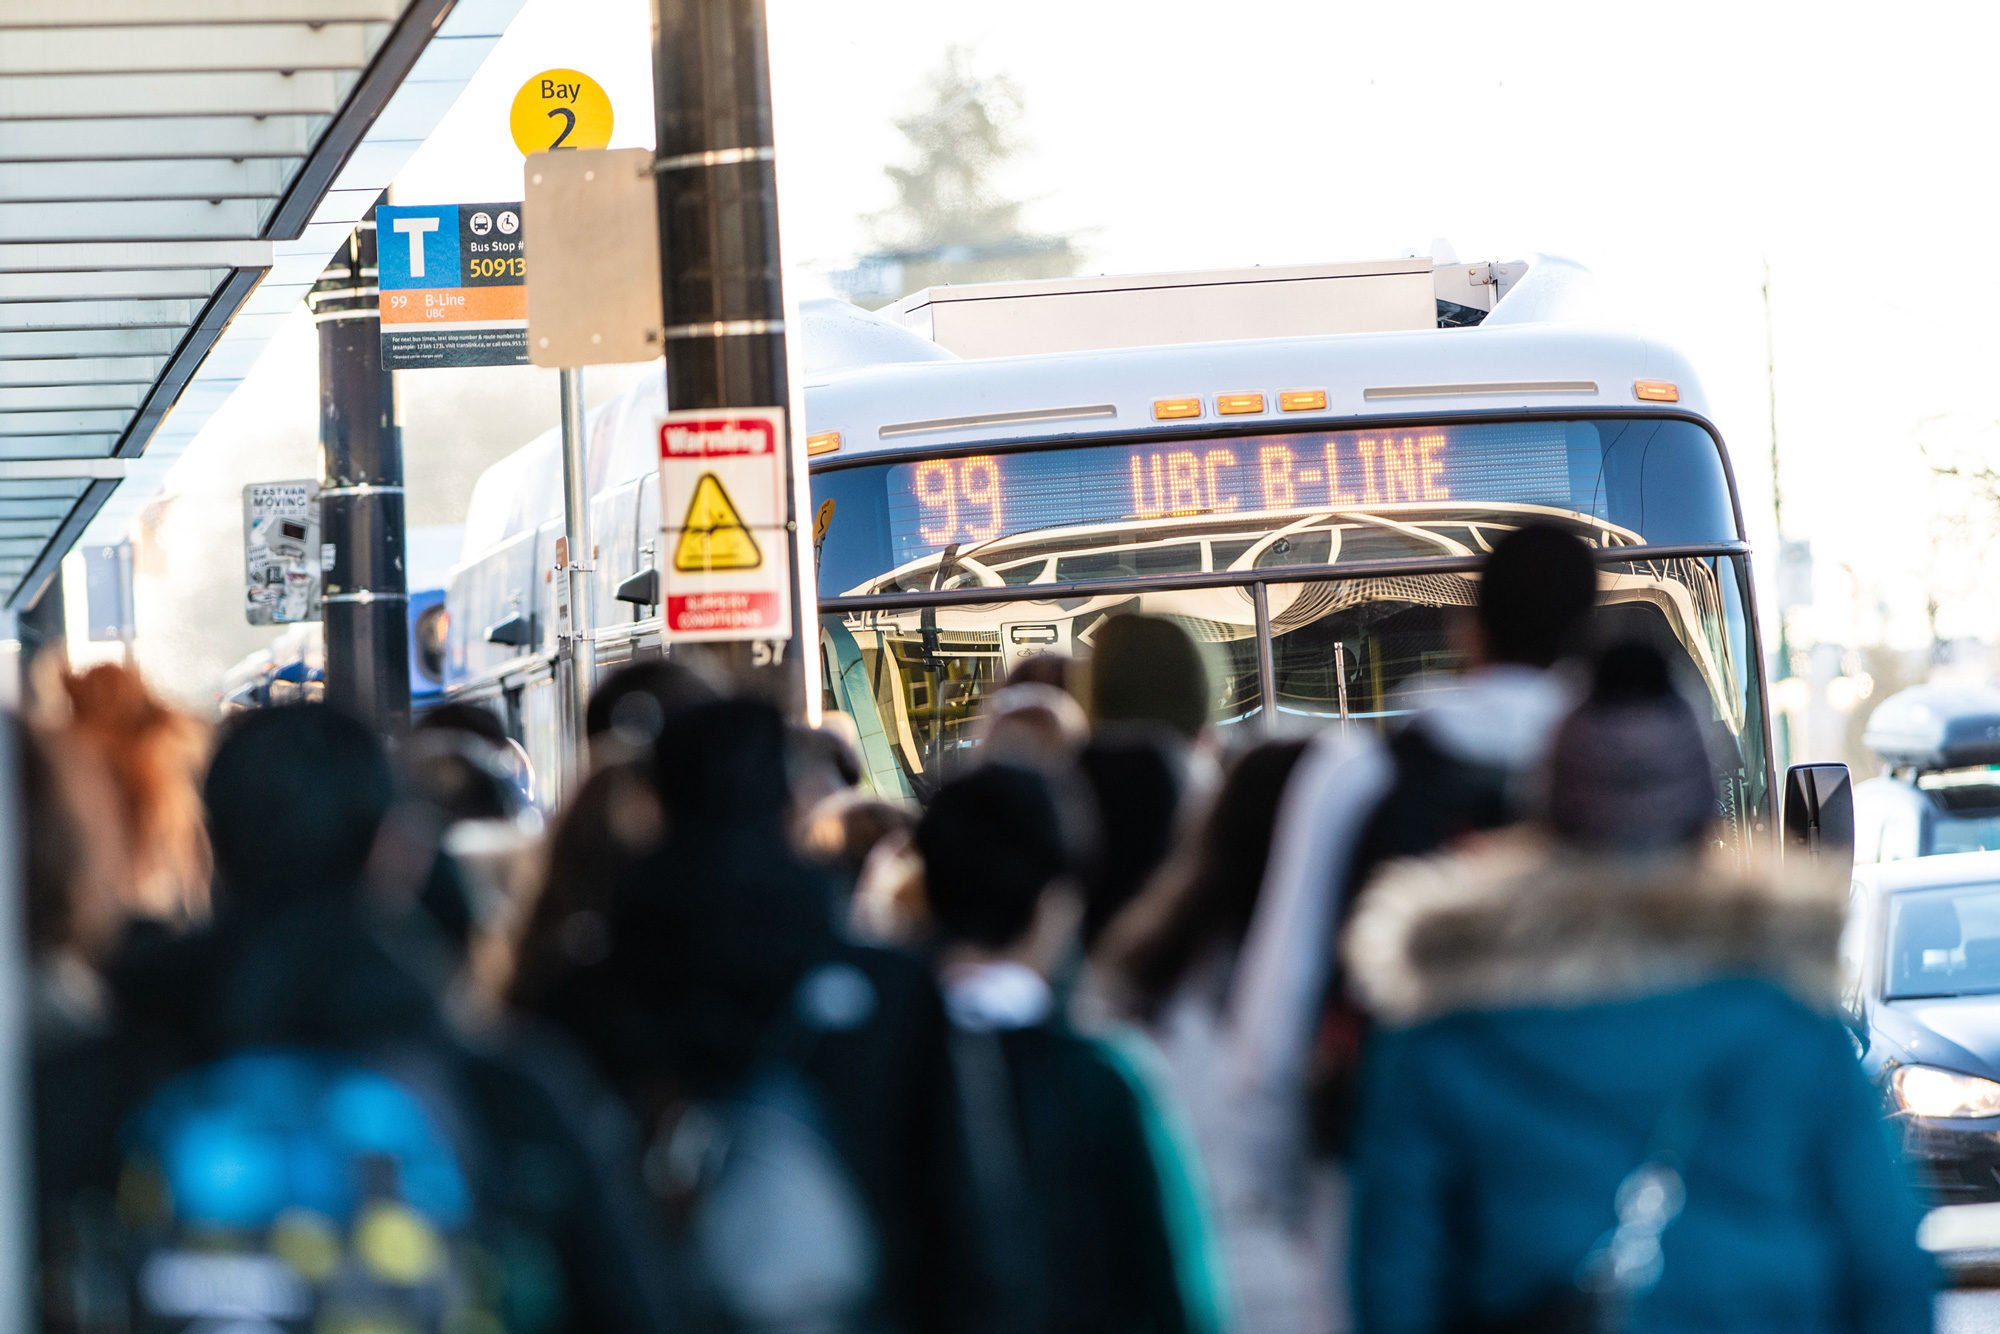 New poll shows Metro Vancouver residents want SkyTrain extended all the way to UBC